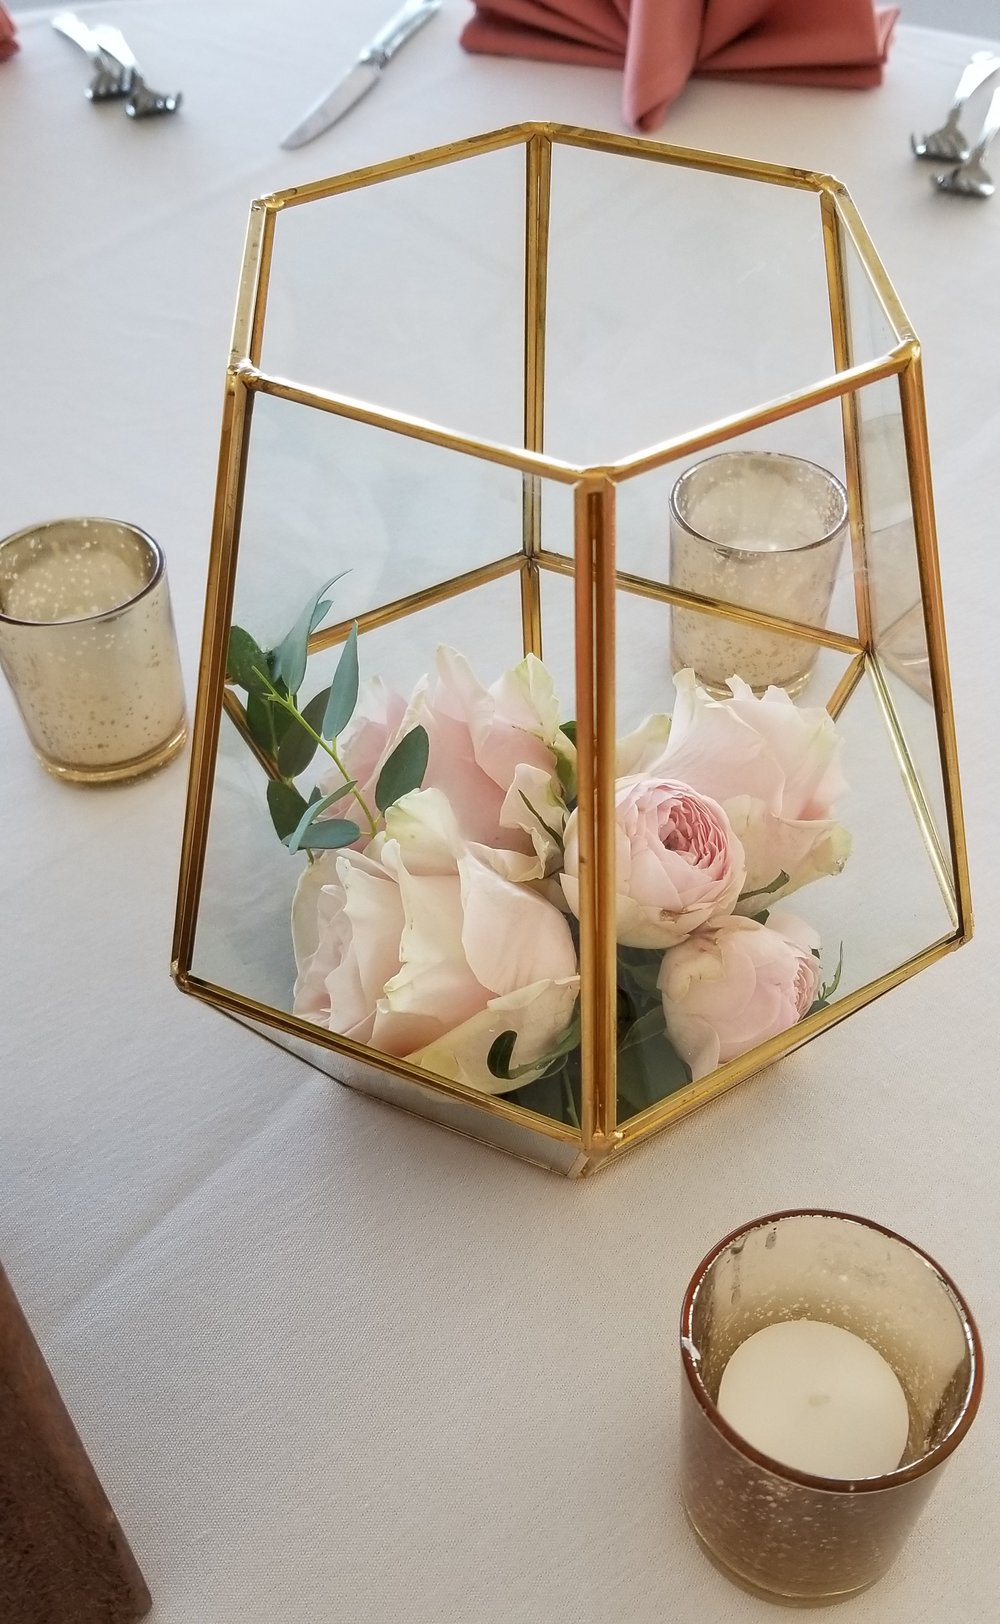 Clear terrarium centerpiece with blush pink flowers and a sprig of greenery surrounded by gold mercury candles. Eagle Vines Golf Club.